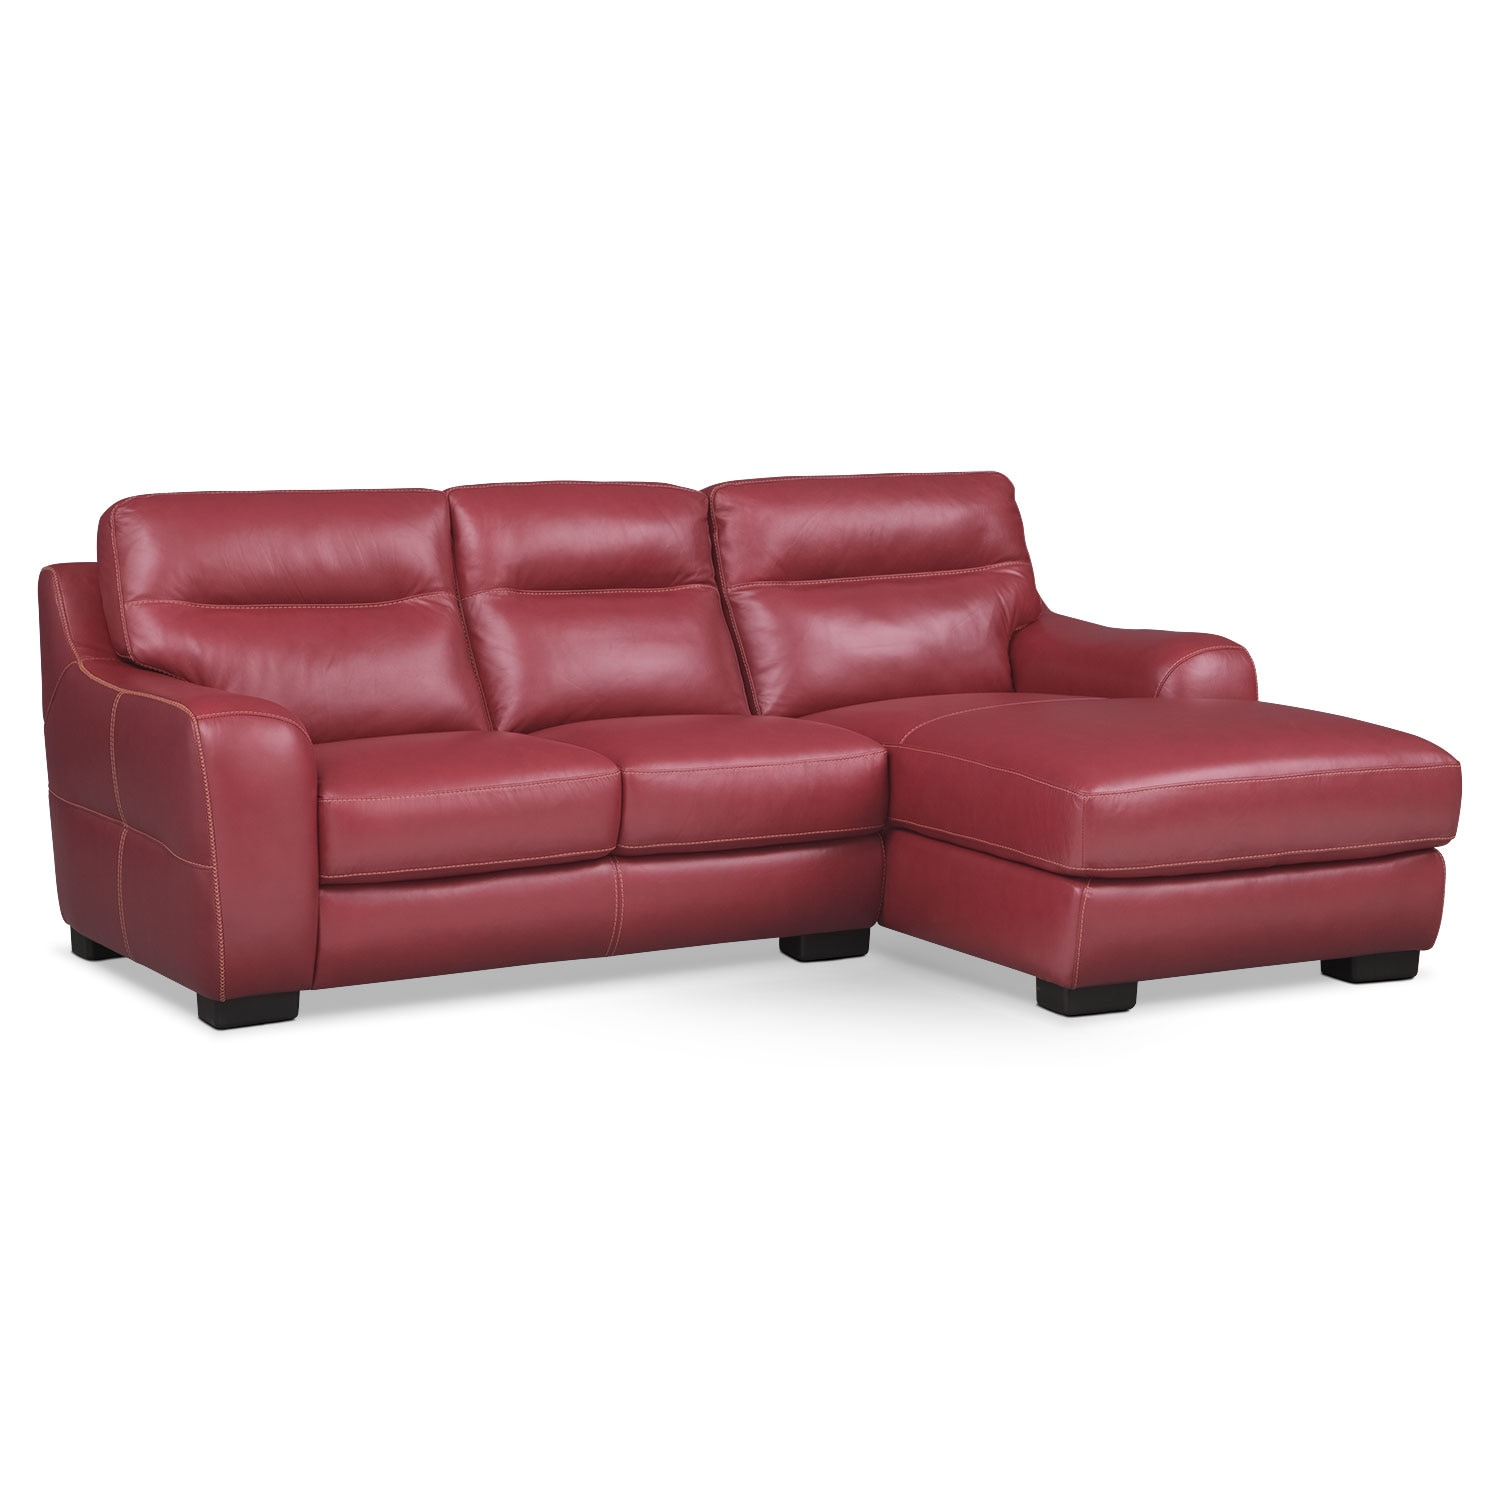 Living Room Furniture - Rocco Red 2 Pc. Right-Facing Chaise Sectional